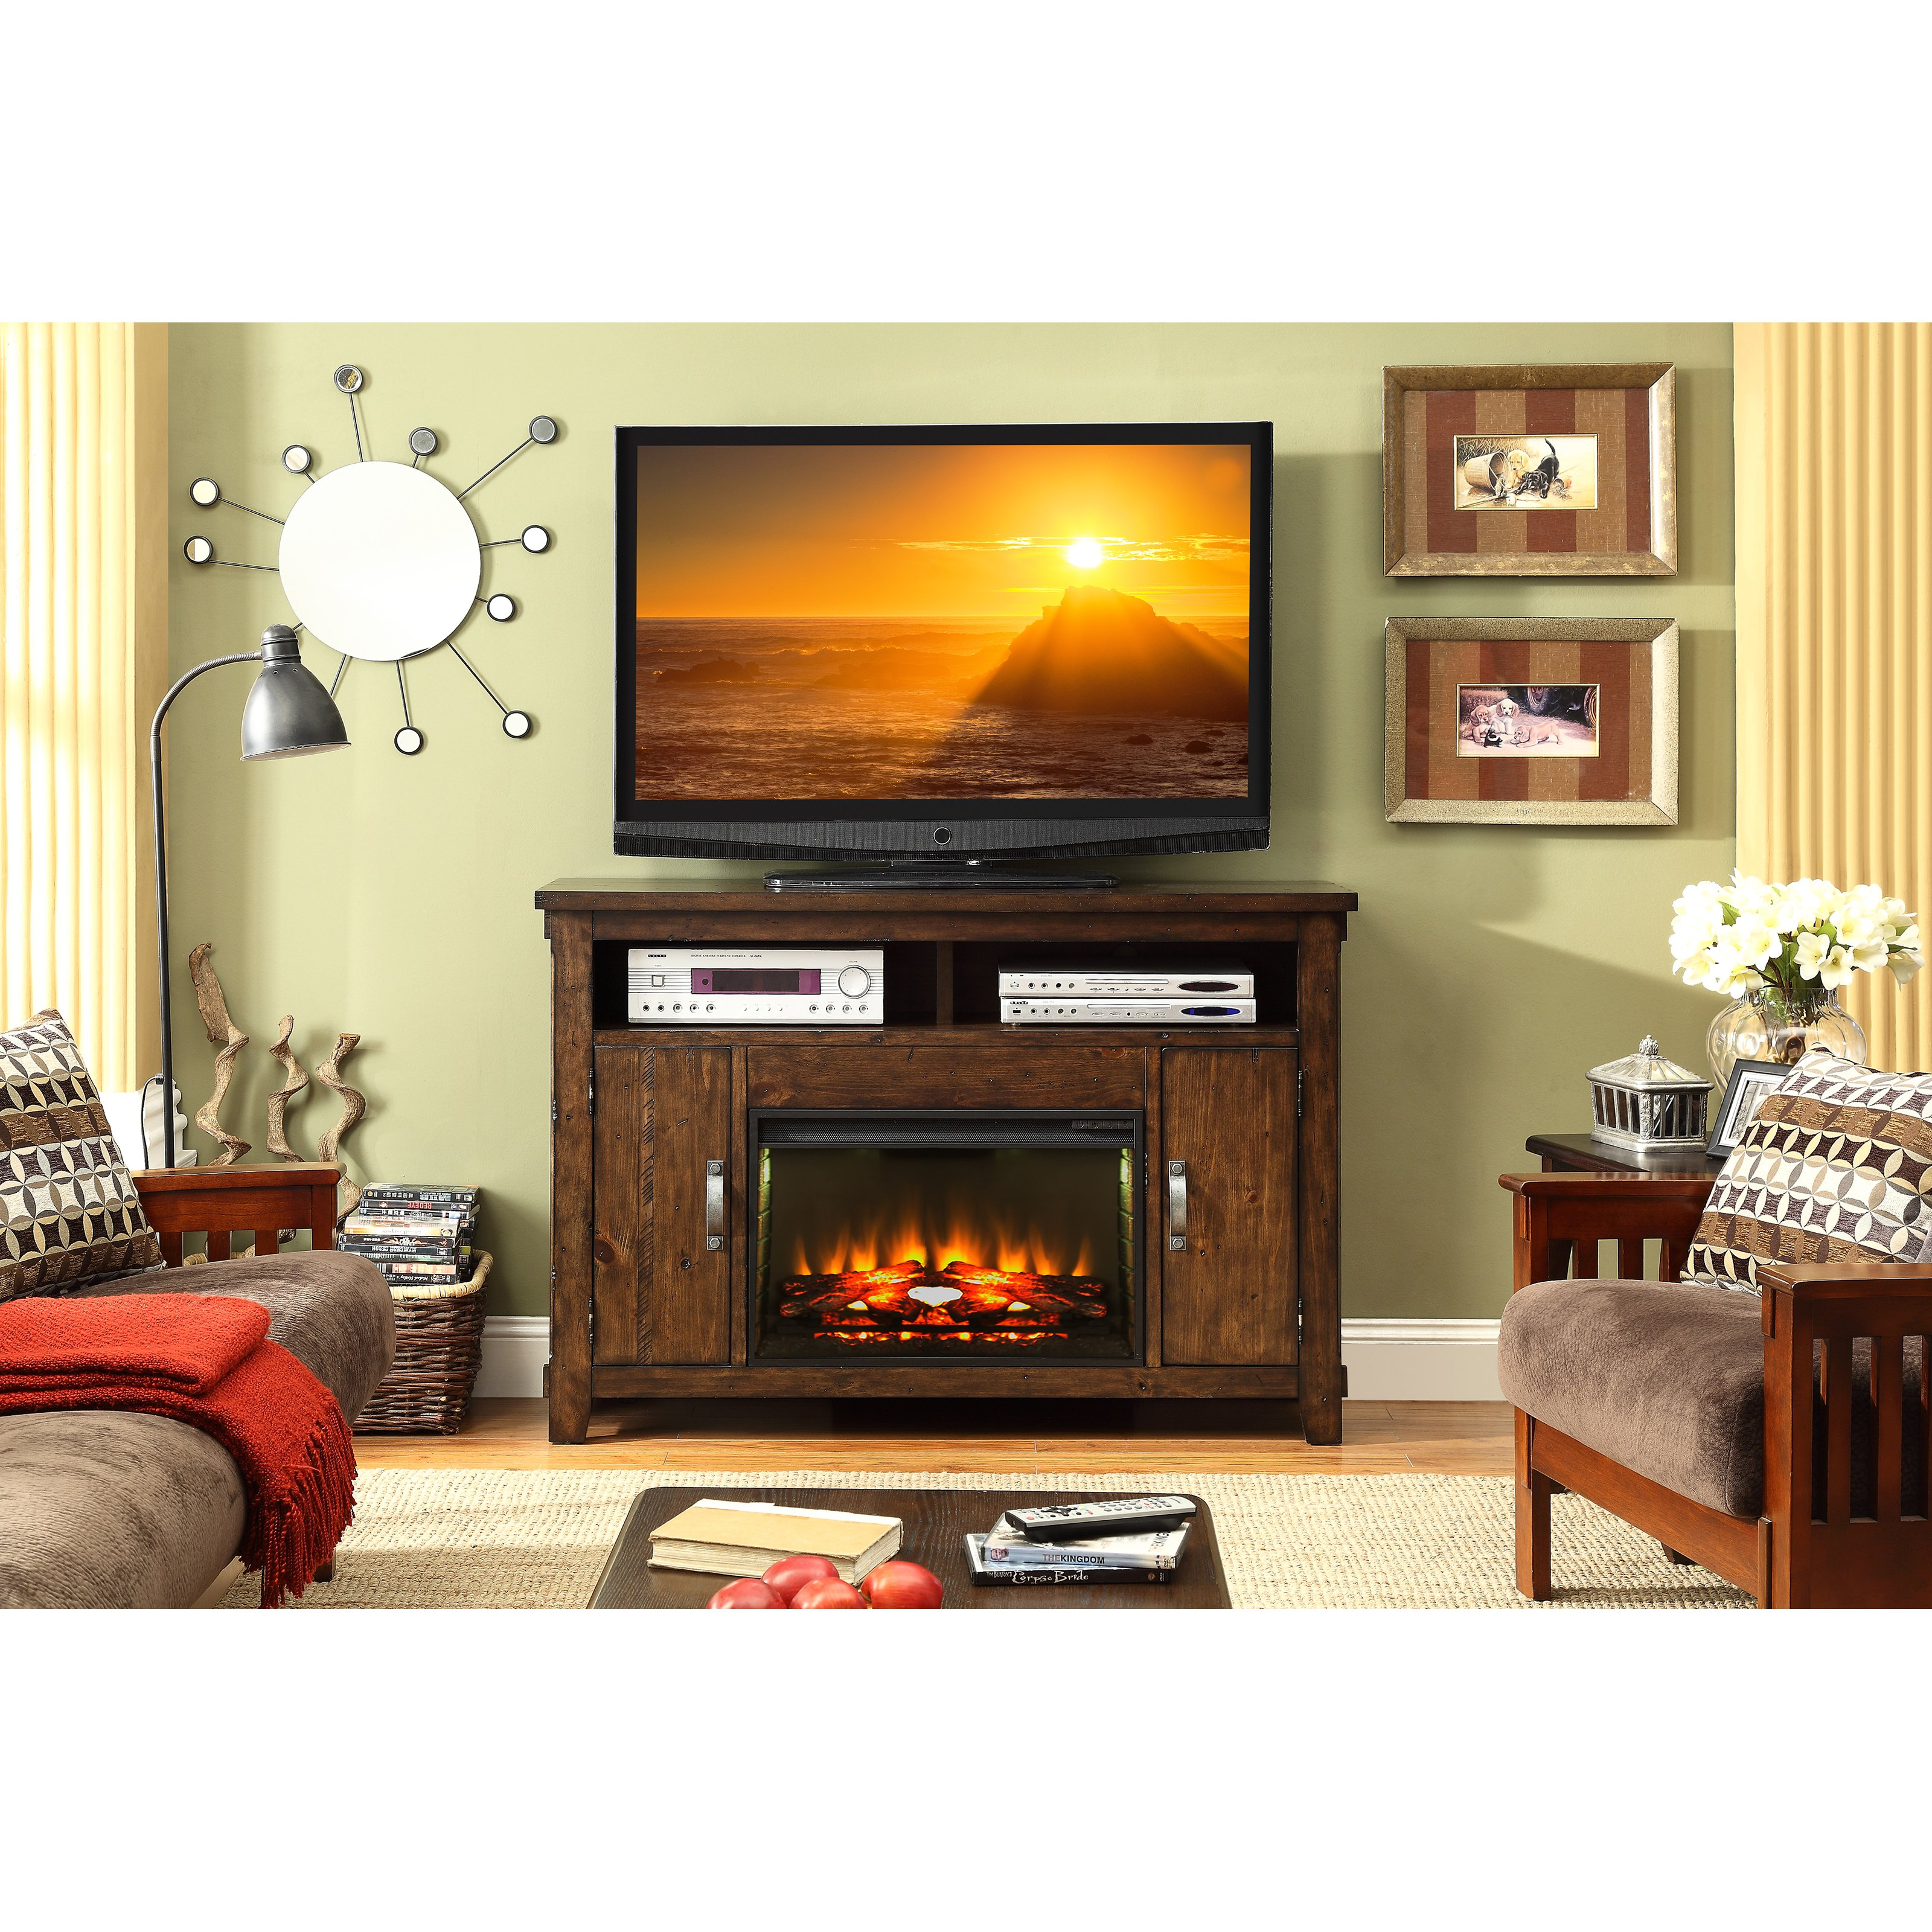 Legends Furniture Restoration 55 in. Electric Media Fireplace